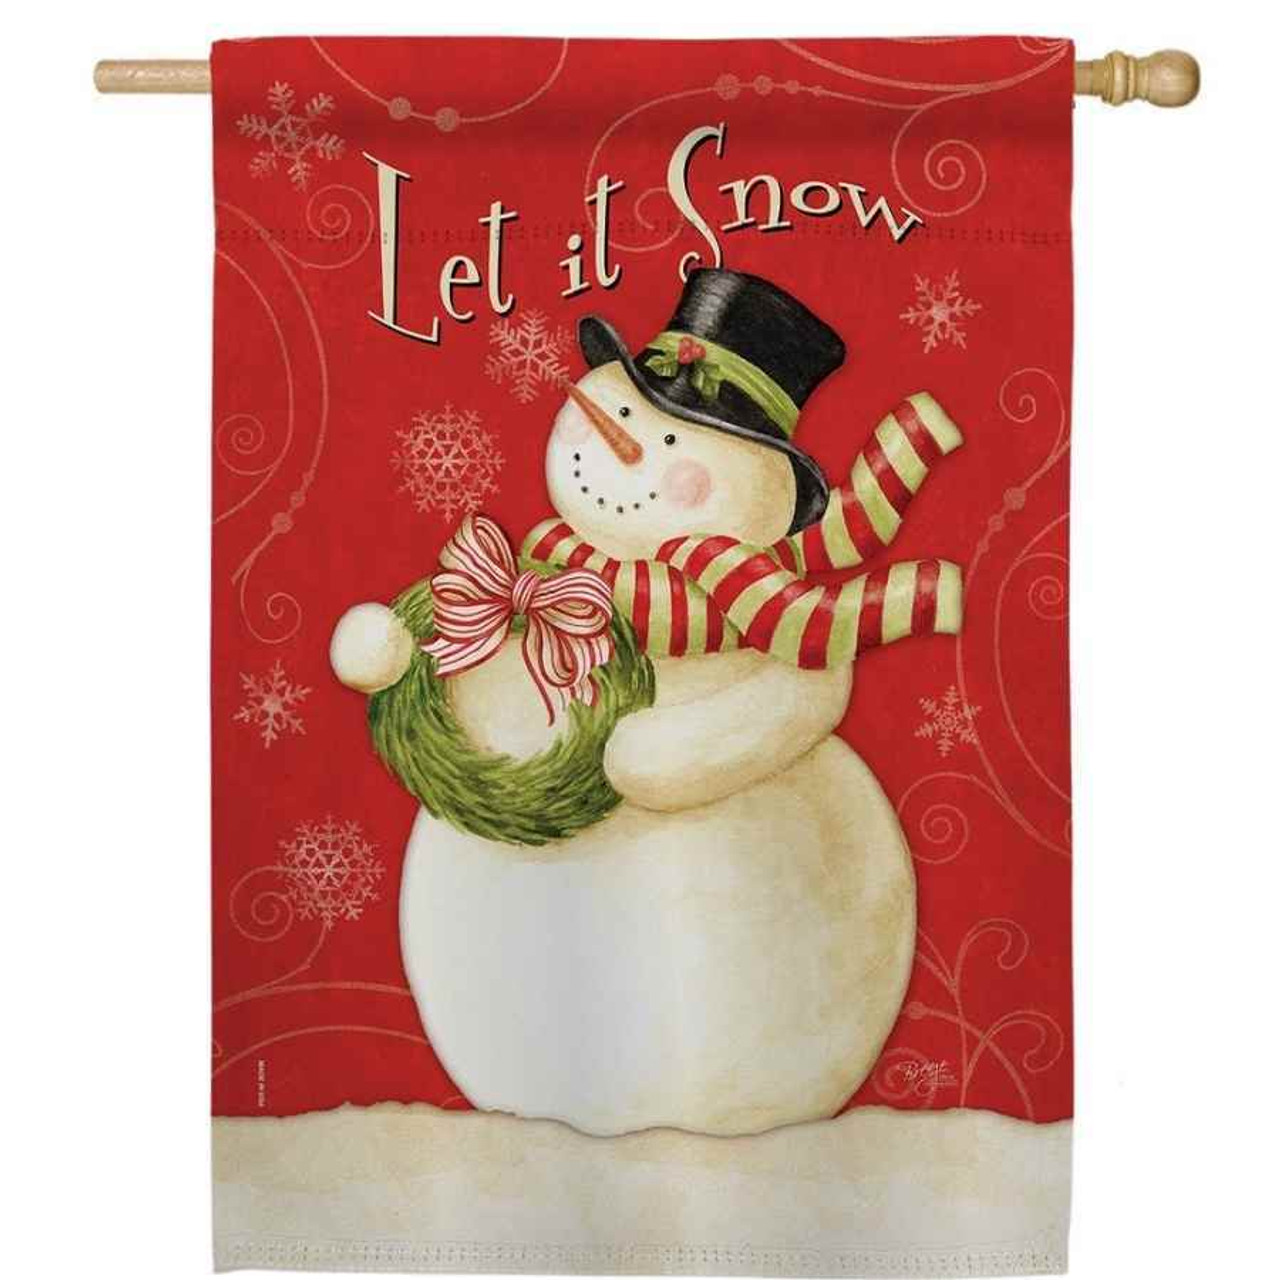 """A house flag featuring a snowman wearing a top hat and scarf while holding a wreath. The background is red with white snowflakes and swirls. """"Let it Snow"""" is written across the top."""